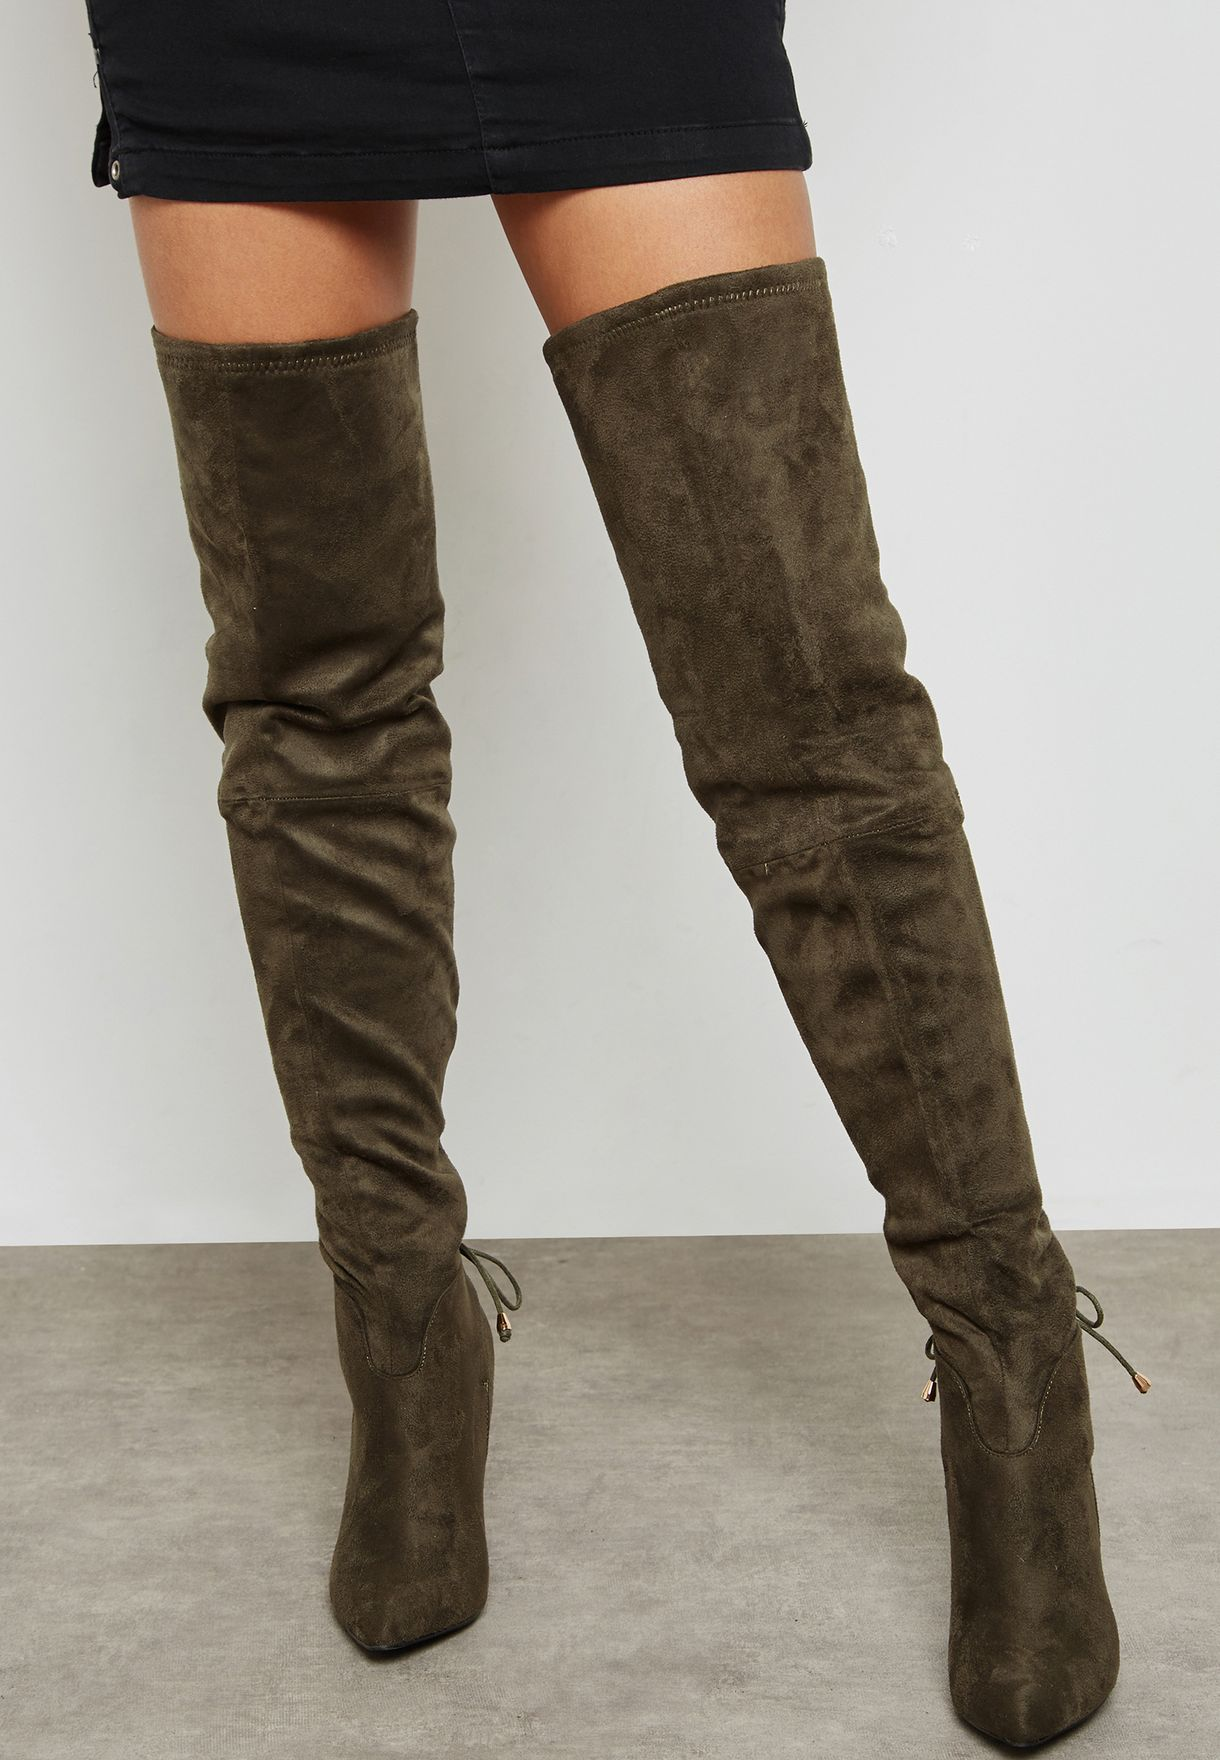 609d41749f9 Shop Truffle green High Heeled Knee Length Boots FAYE65 for Women in ...